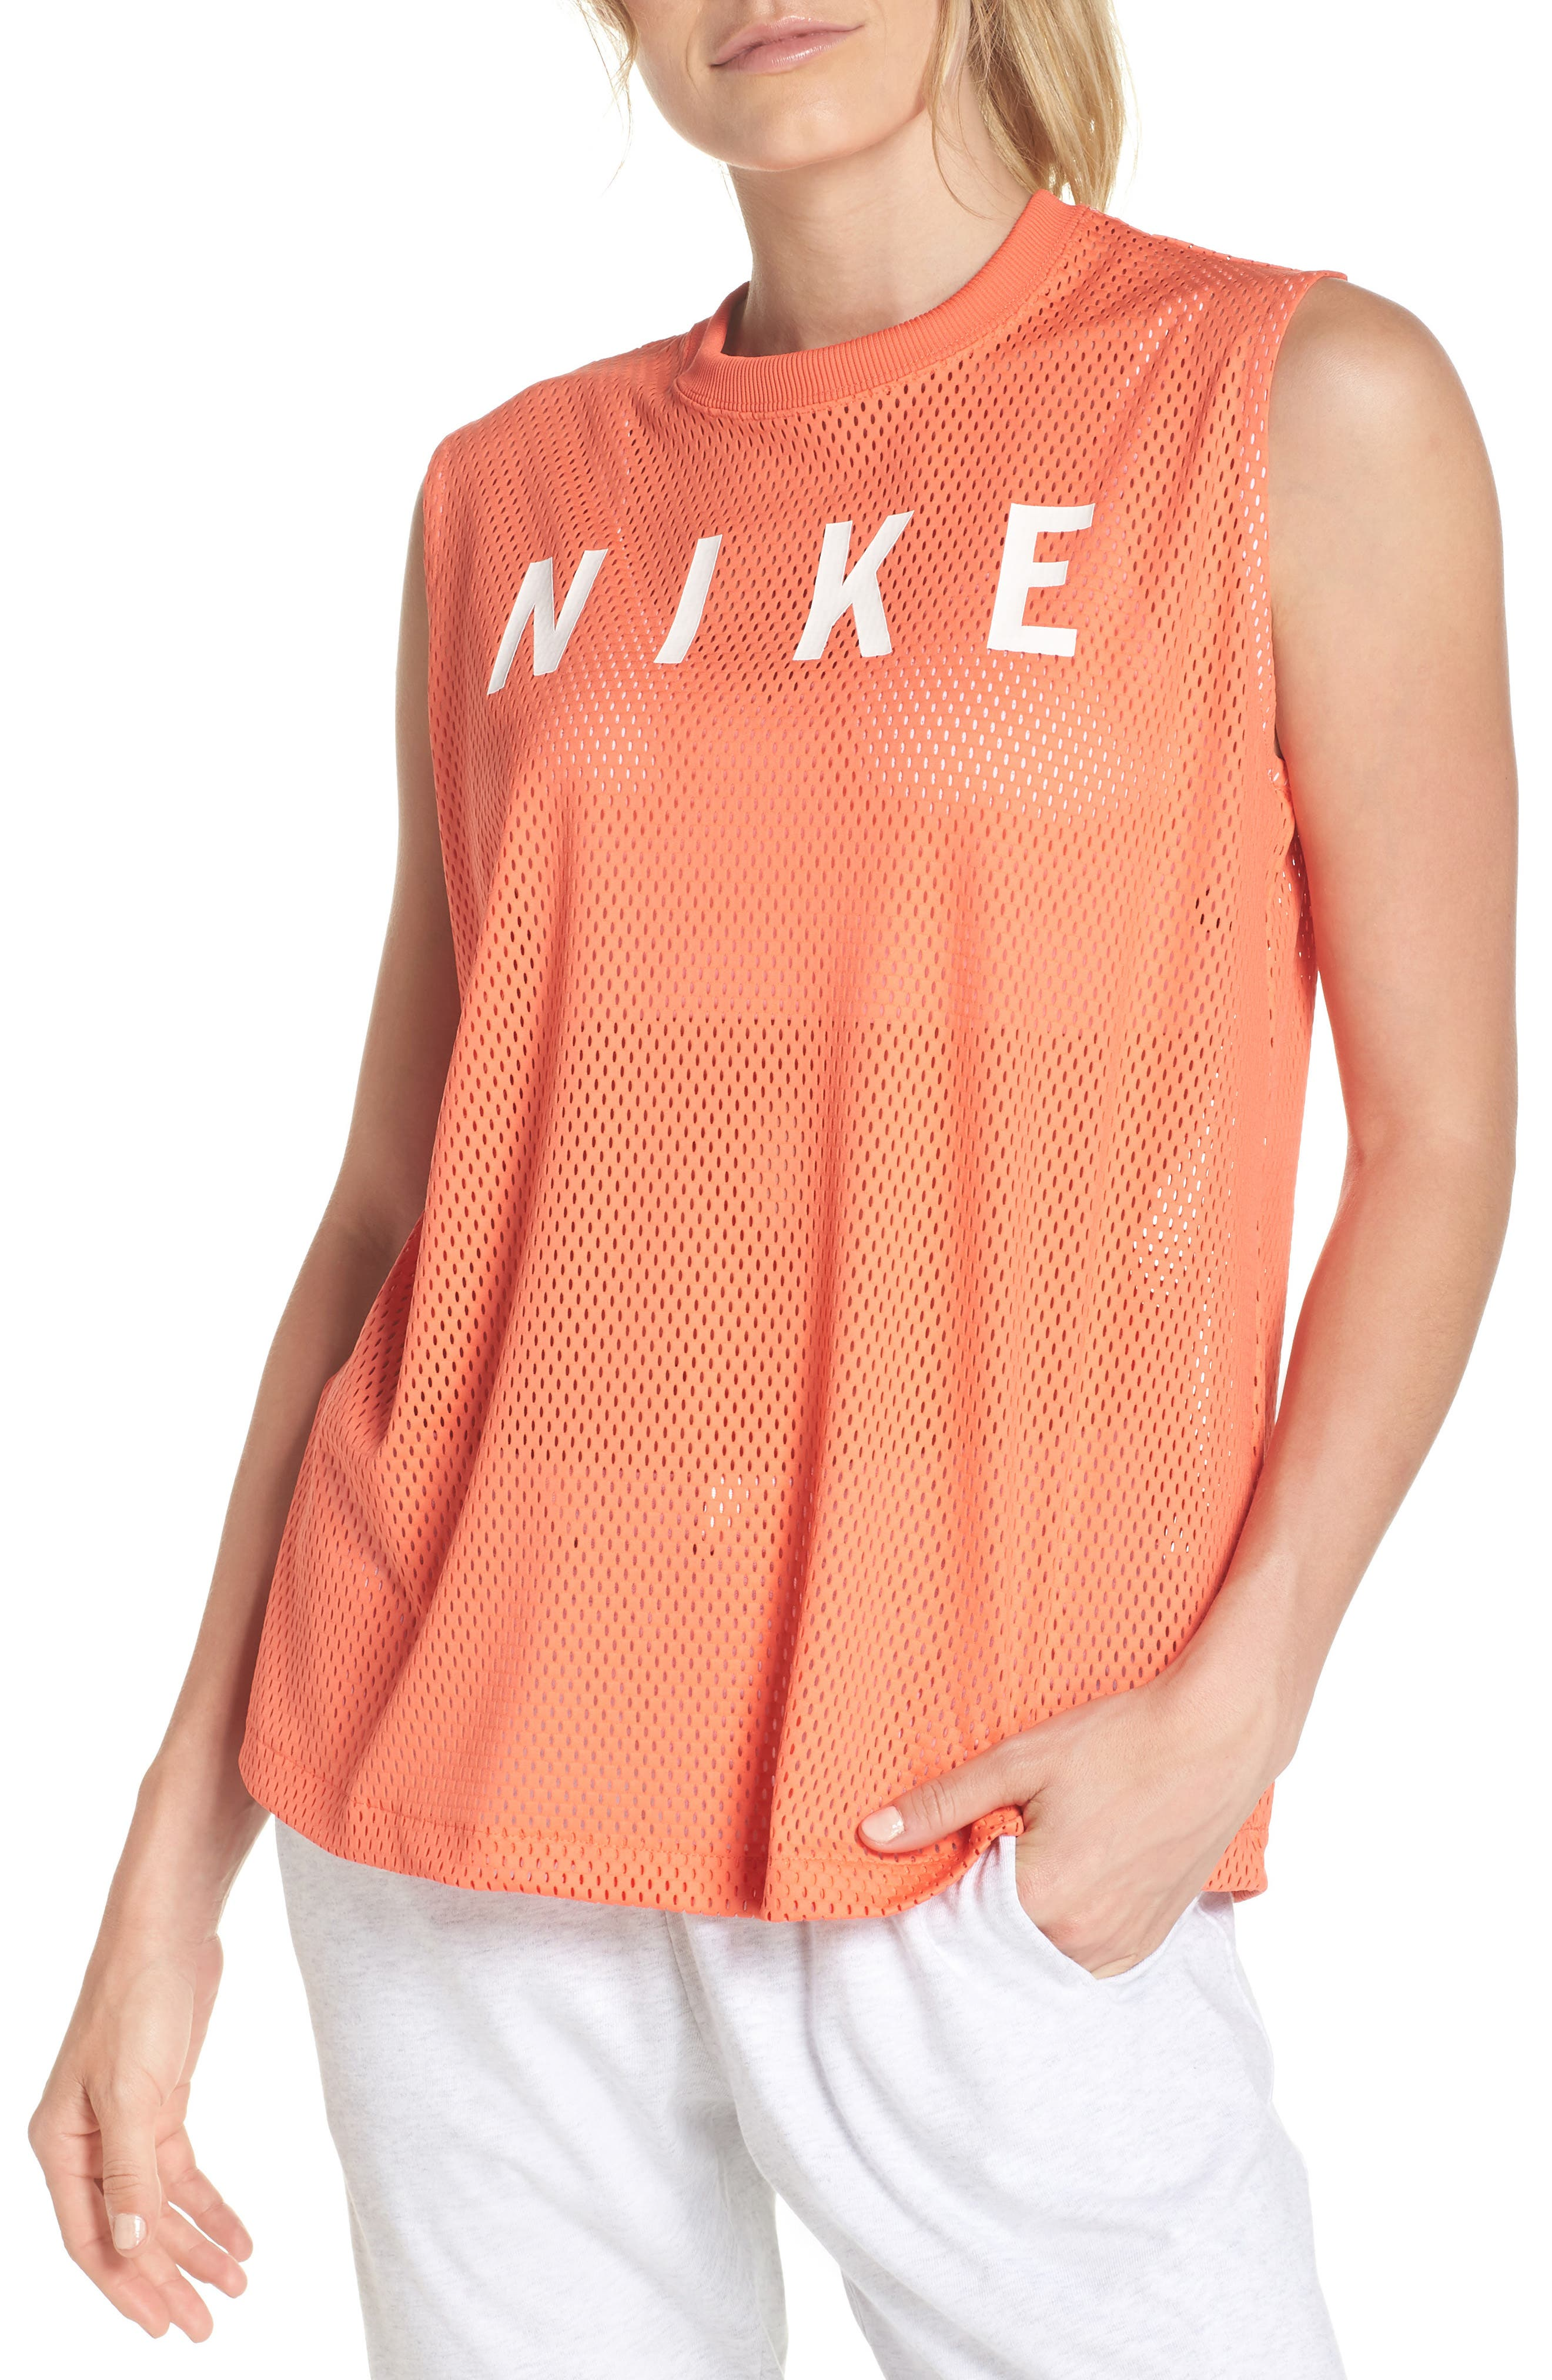 Sportswear Women's Dry Mesh Muscle Tank,                         Main,                         color, Rush Coral/ White